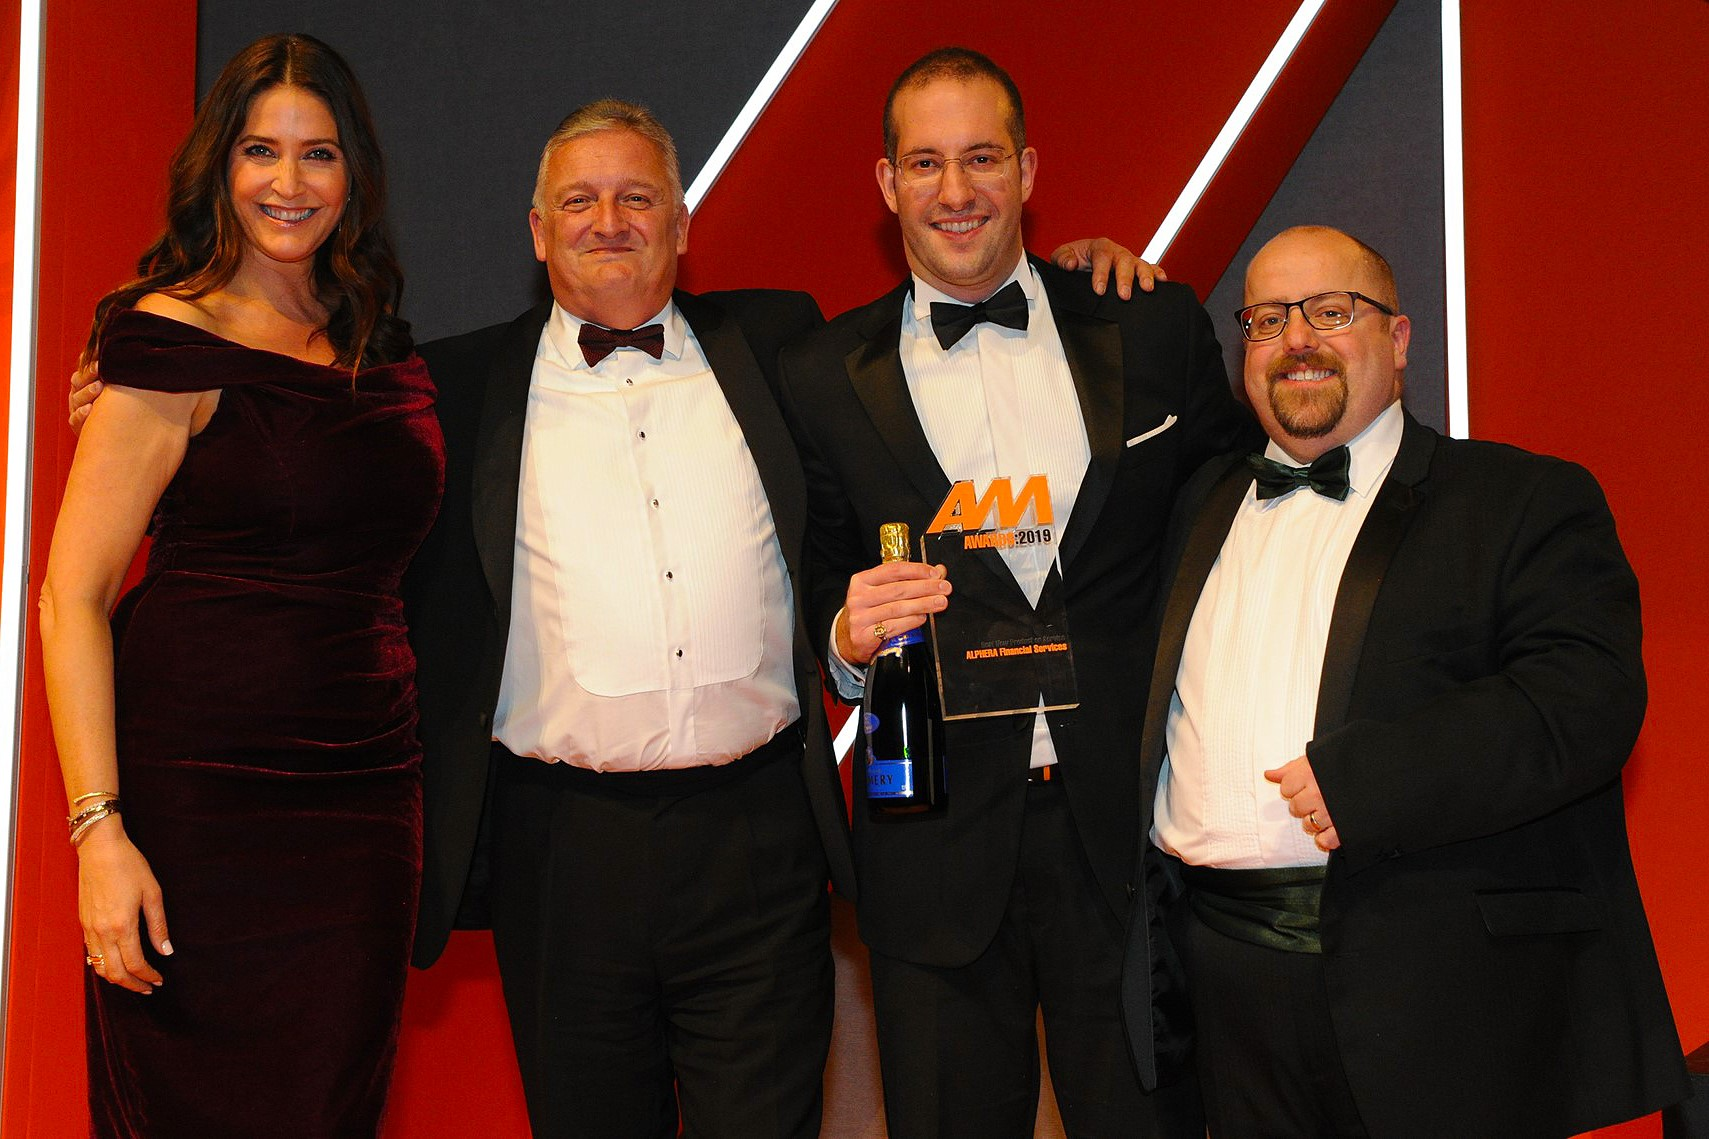 Gerry Kouris, head of marketing,  Alphera Financial Services, (second from right)  accepts the award from AM   editor Tim Rose, right and host Lisa Snowdon, left